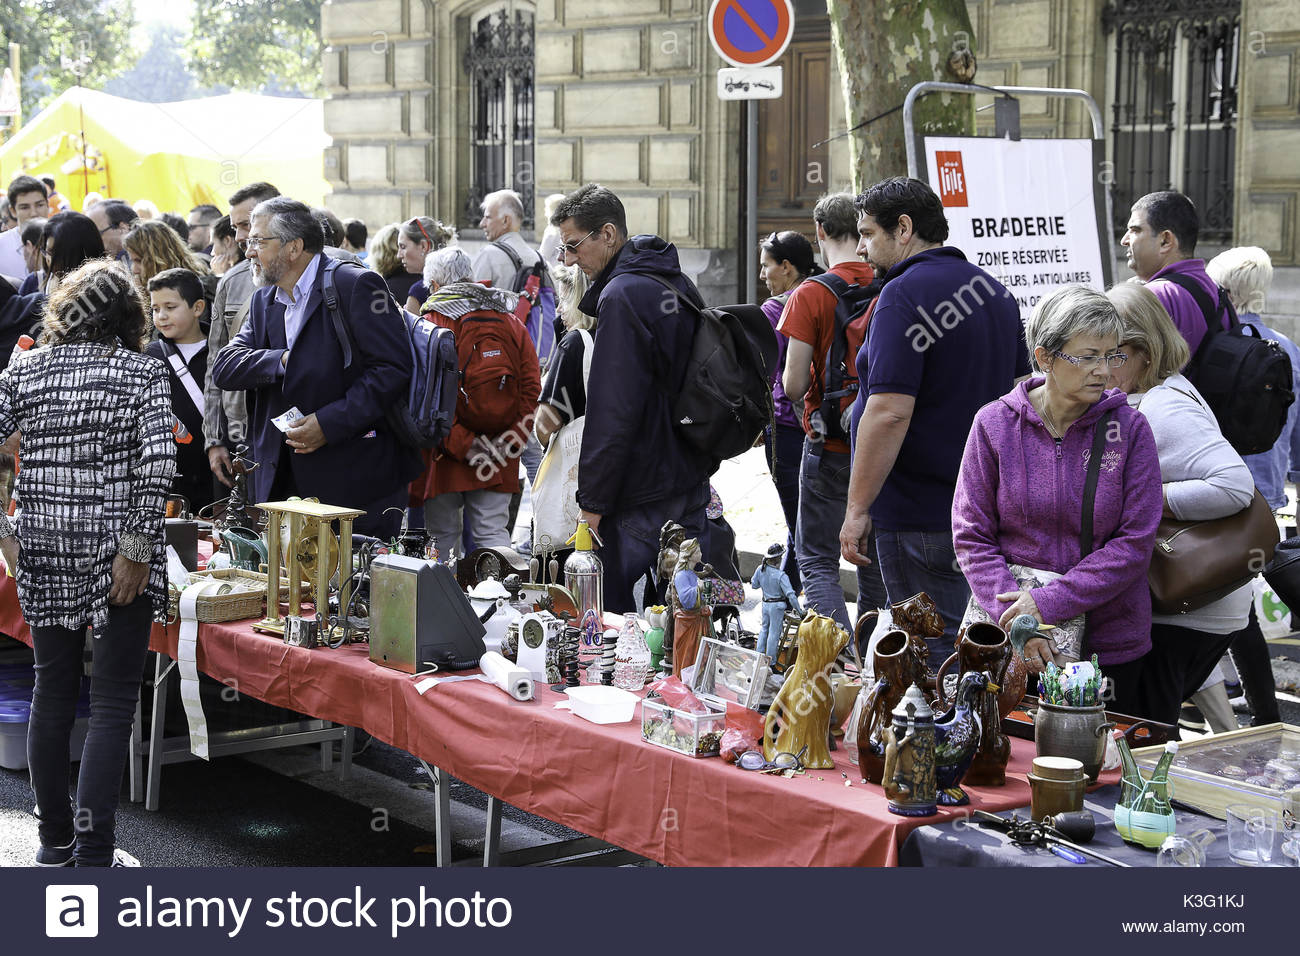 Lille france 2nd sep 2017 people visit the braderie de lille flea stock photo 157089846 alamy - Braderie de lille date 2017 ...